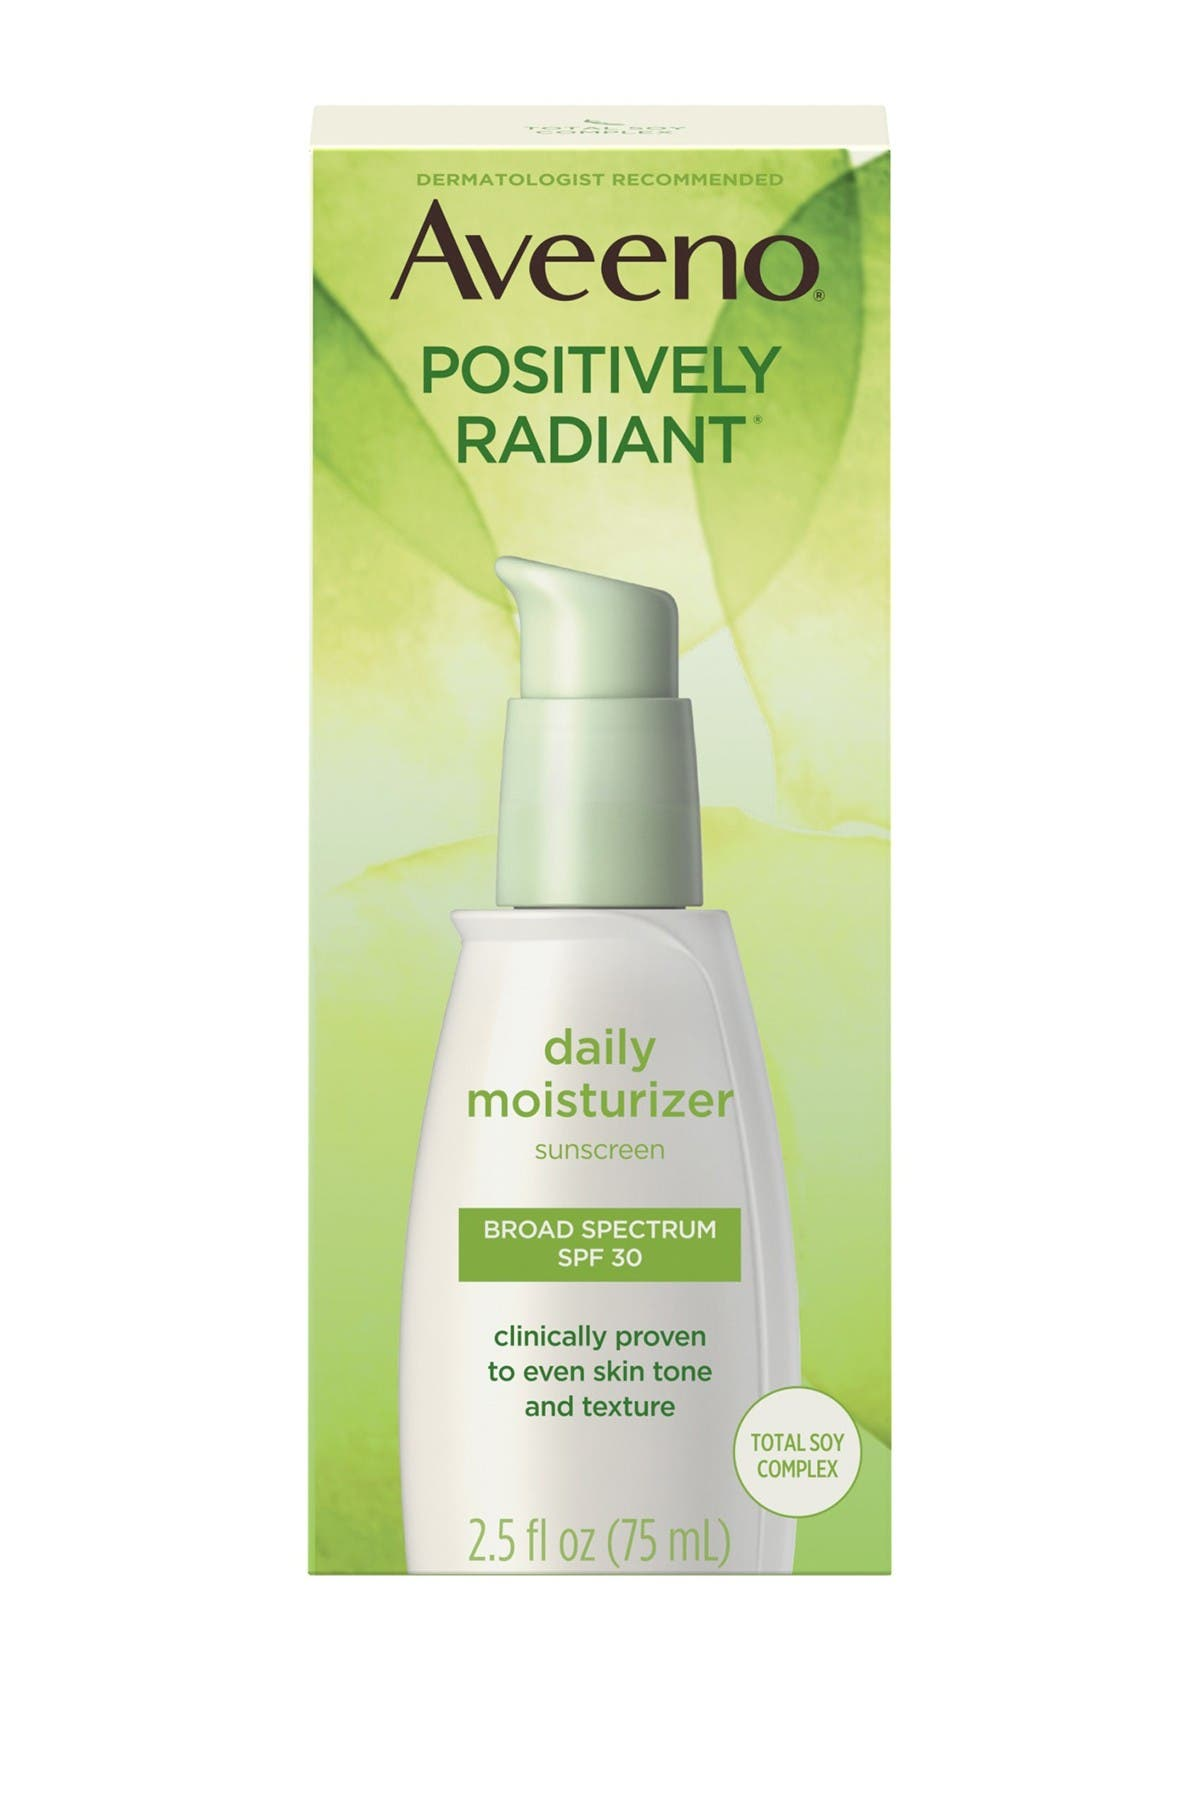 Image of Aveeno Positively Radiant Daily Moisturizer